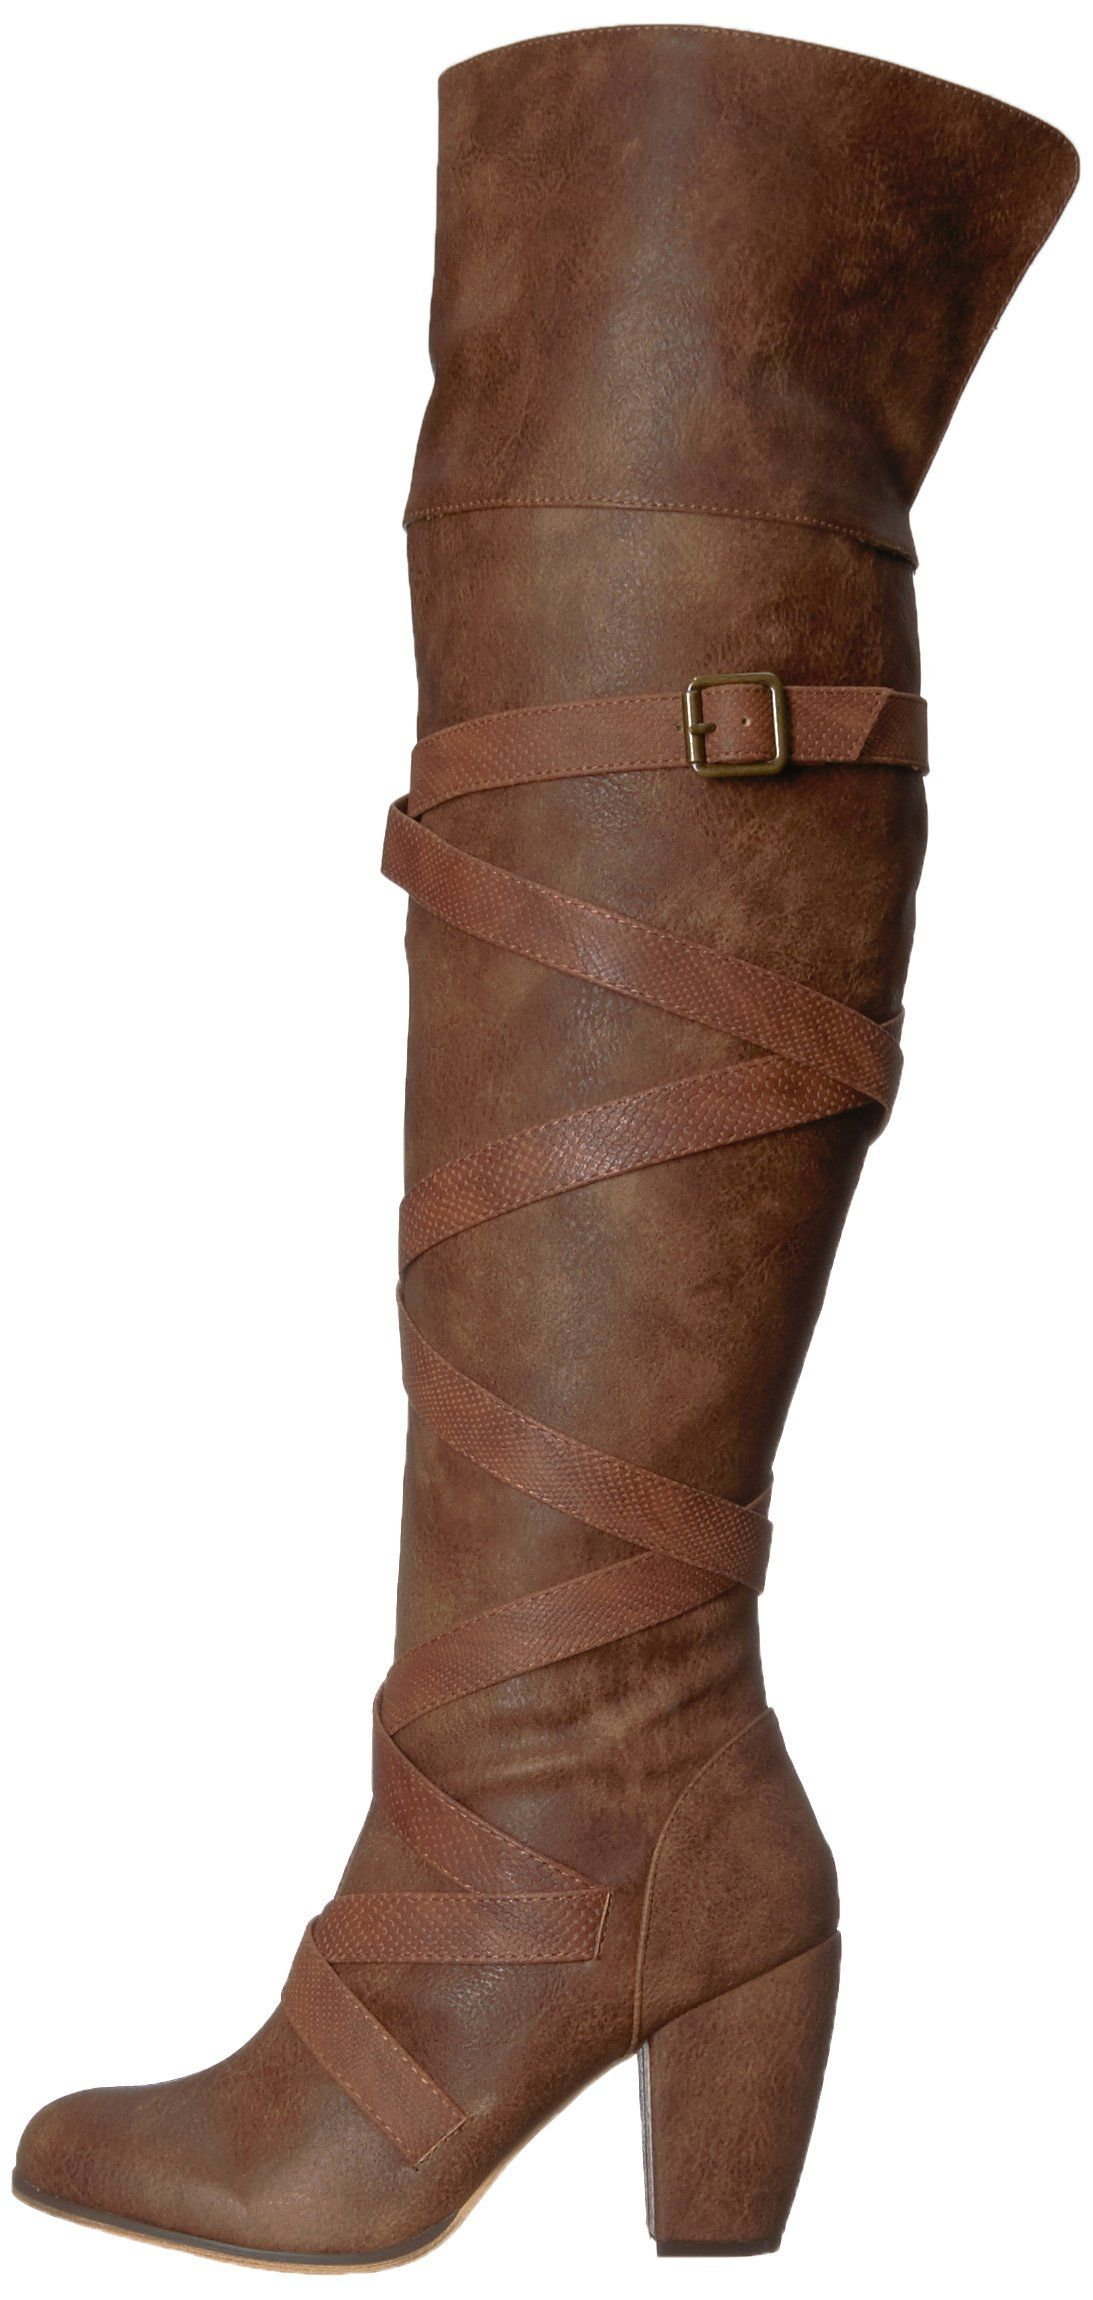 b6a14ae7fc55 Michael Antonio Womens Moonby Western Boot Cognac 8 M US     Details can be